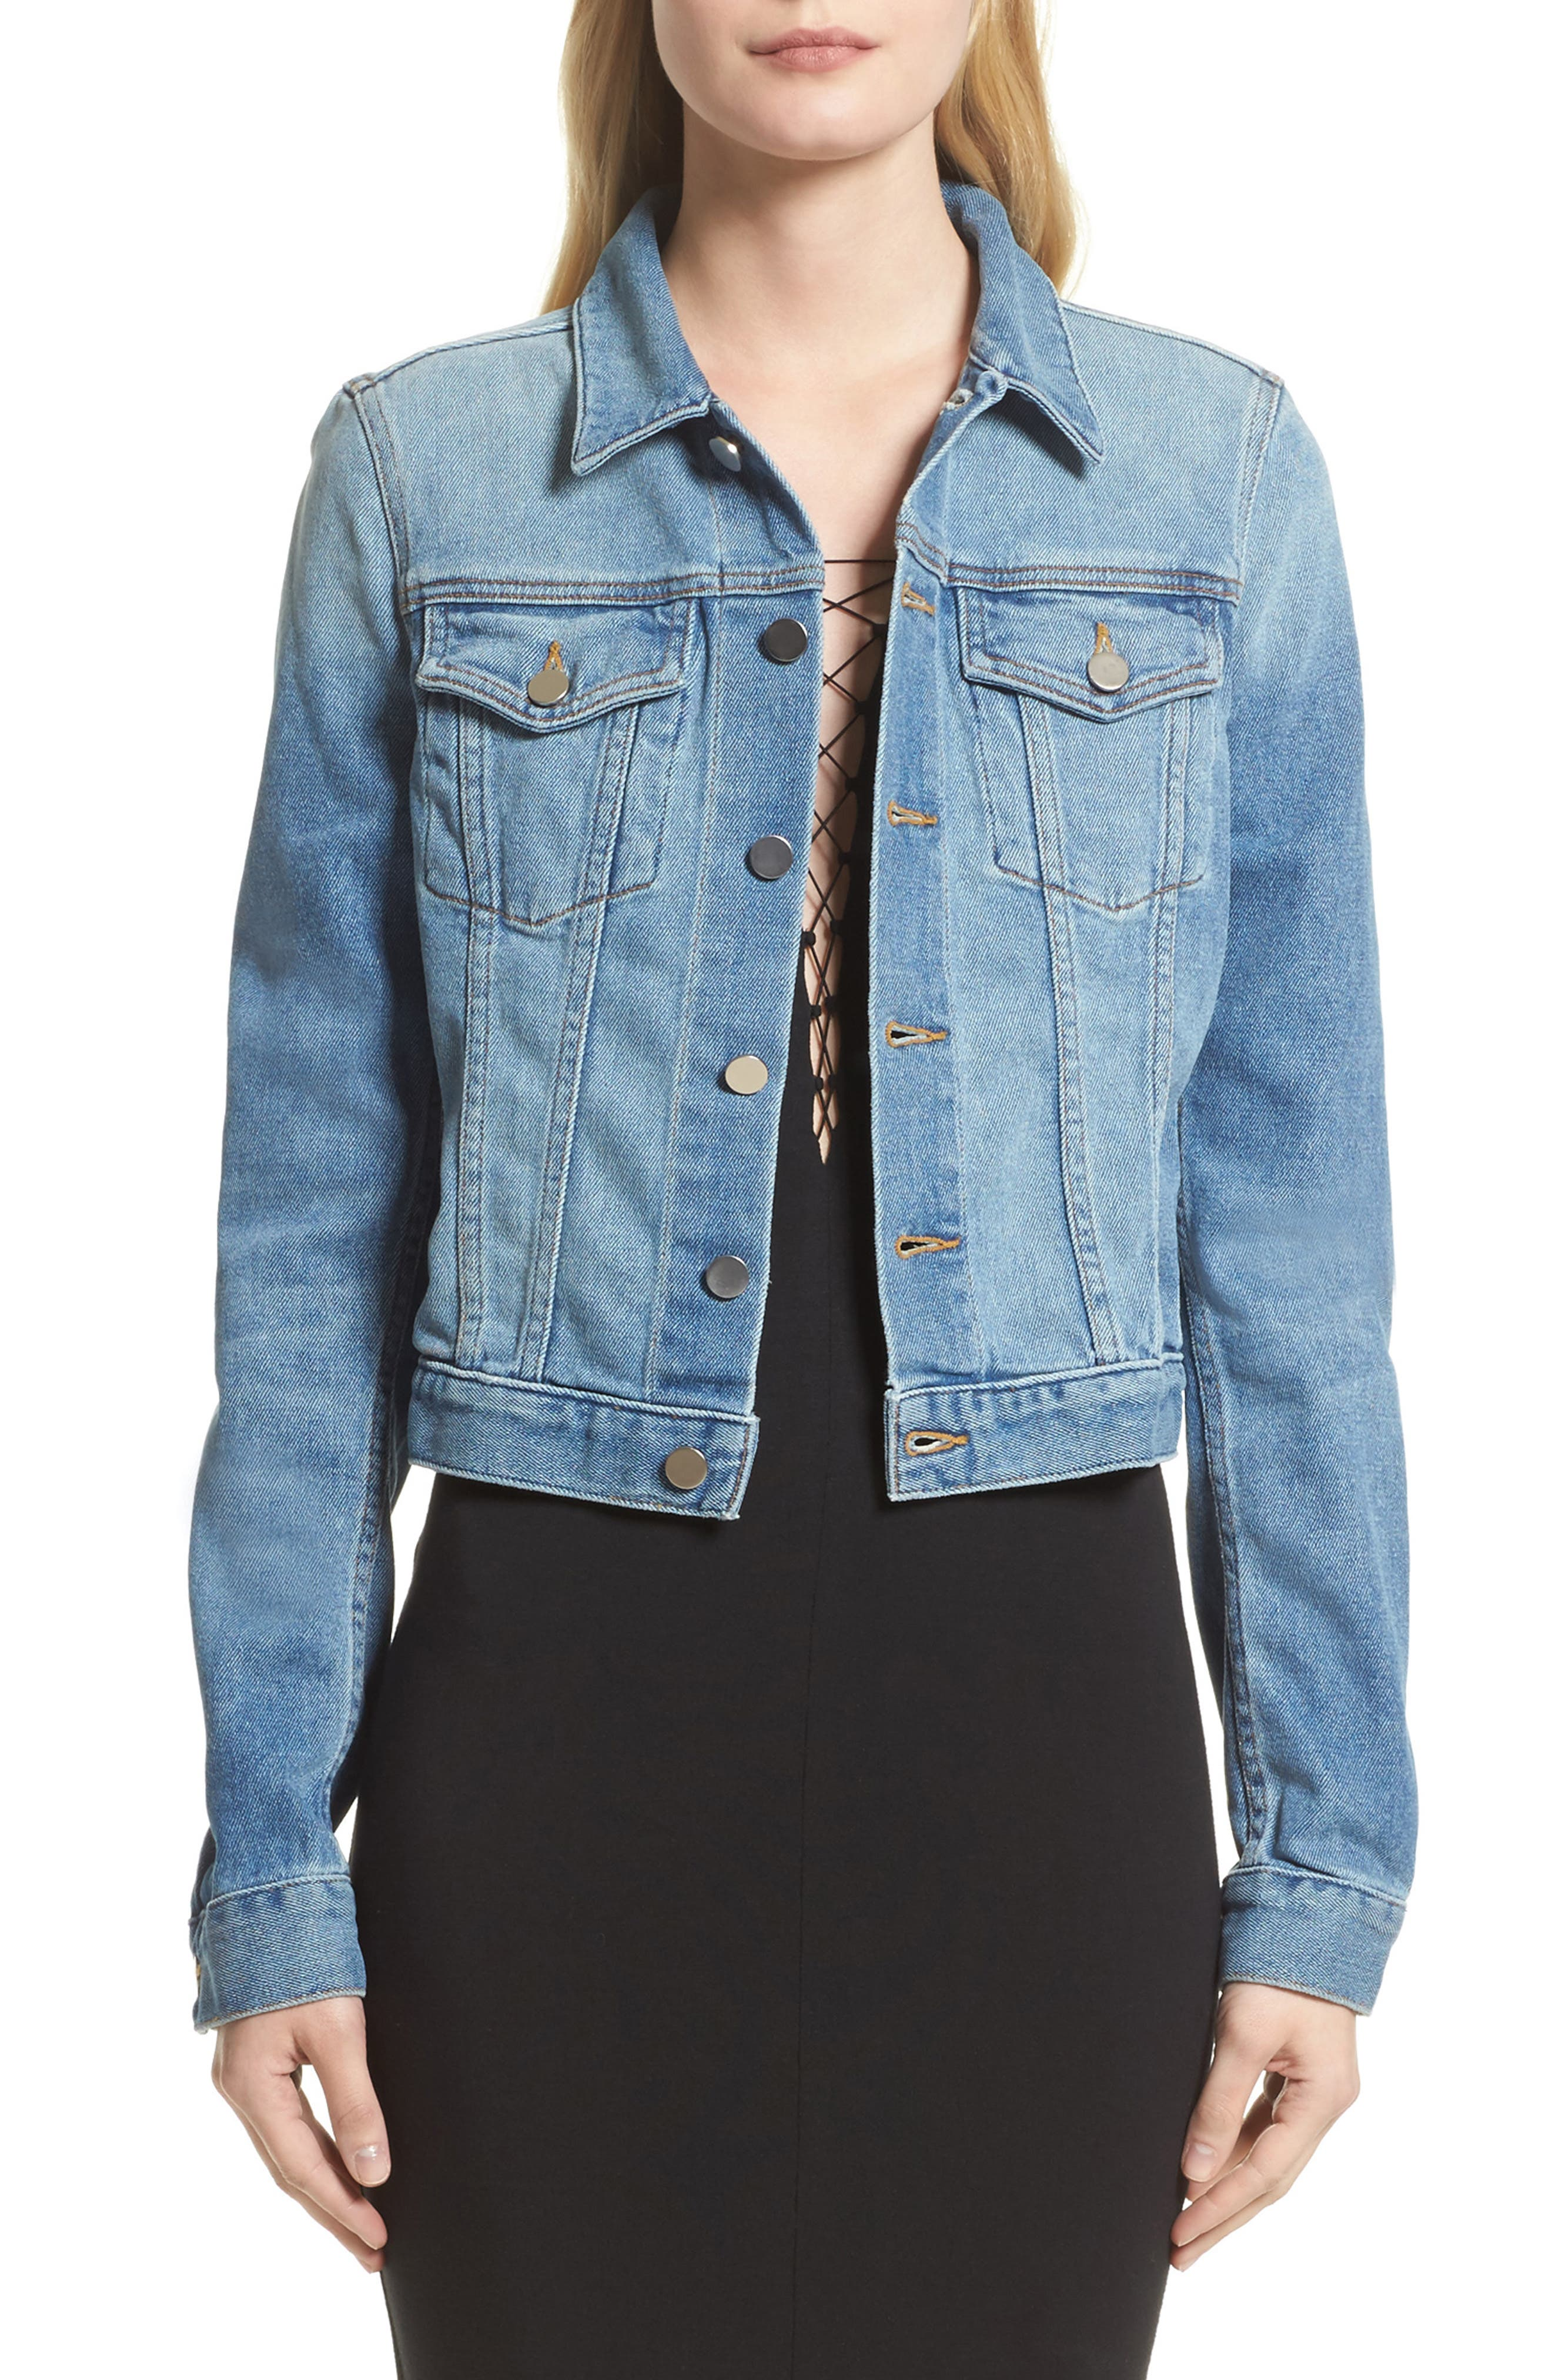 Main Image - T by Alexander Wang Denim Jacket (Nordstrom Exclusive)